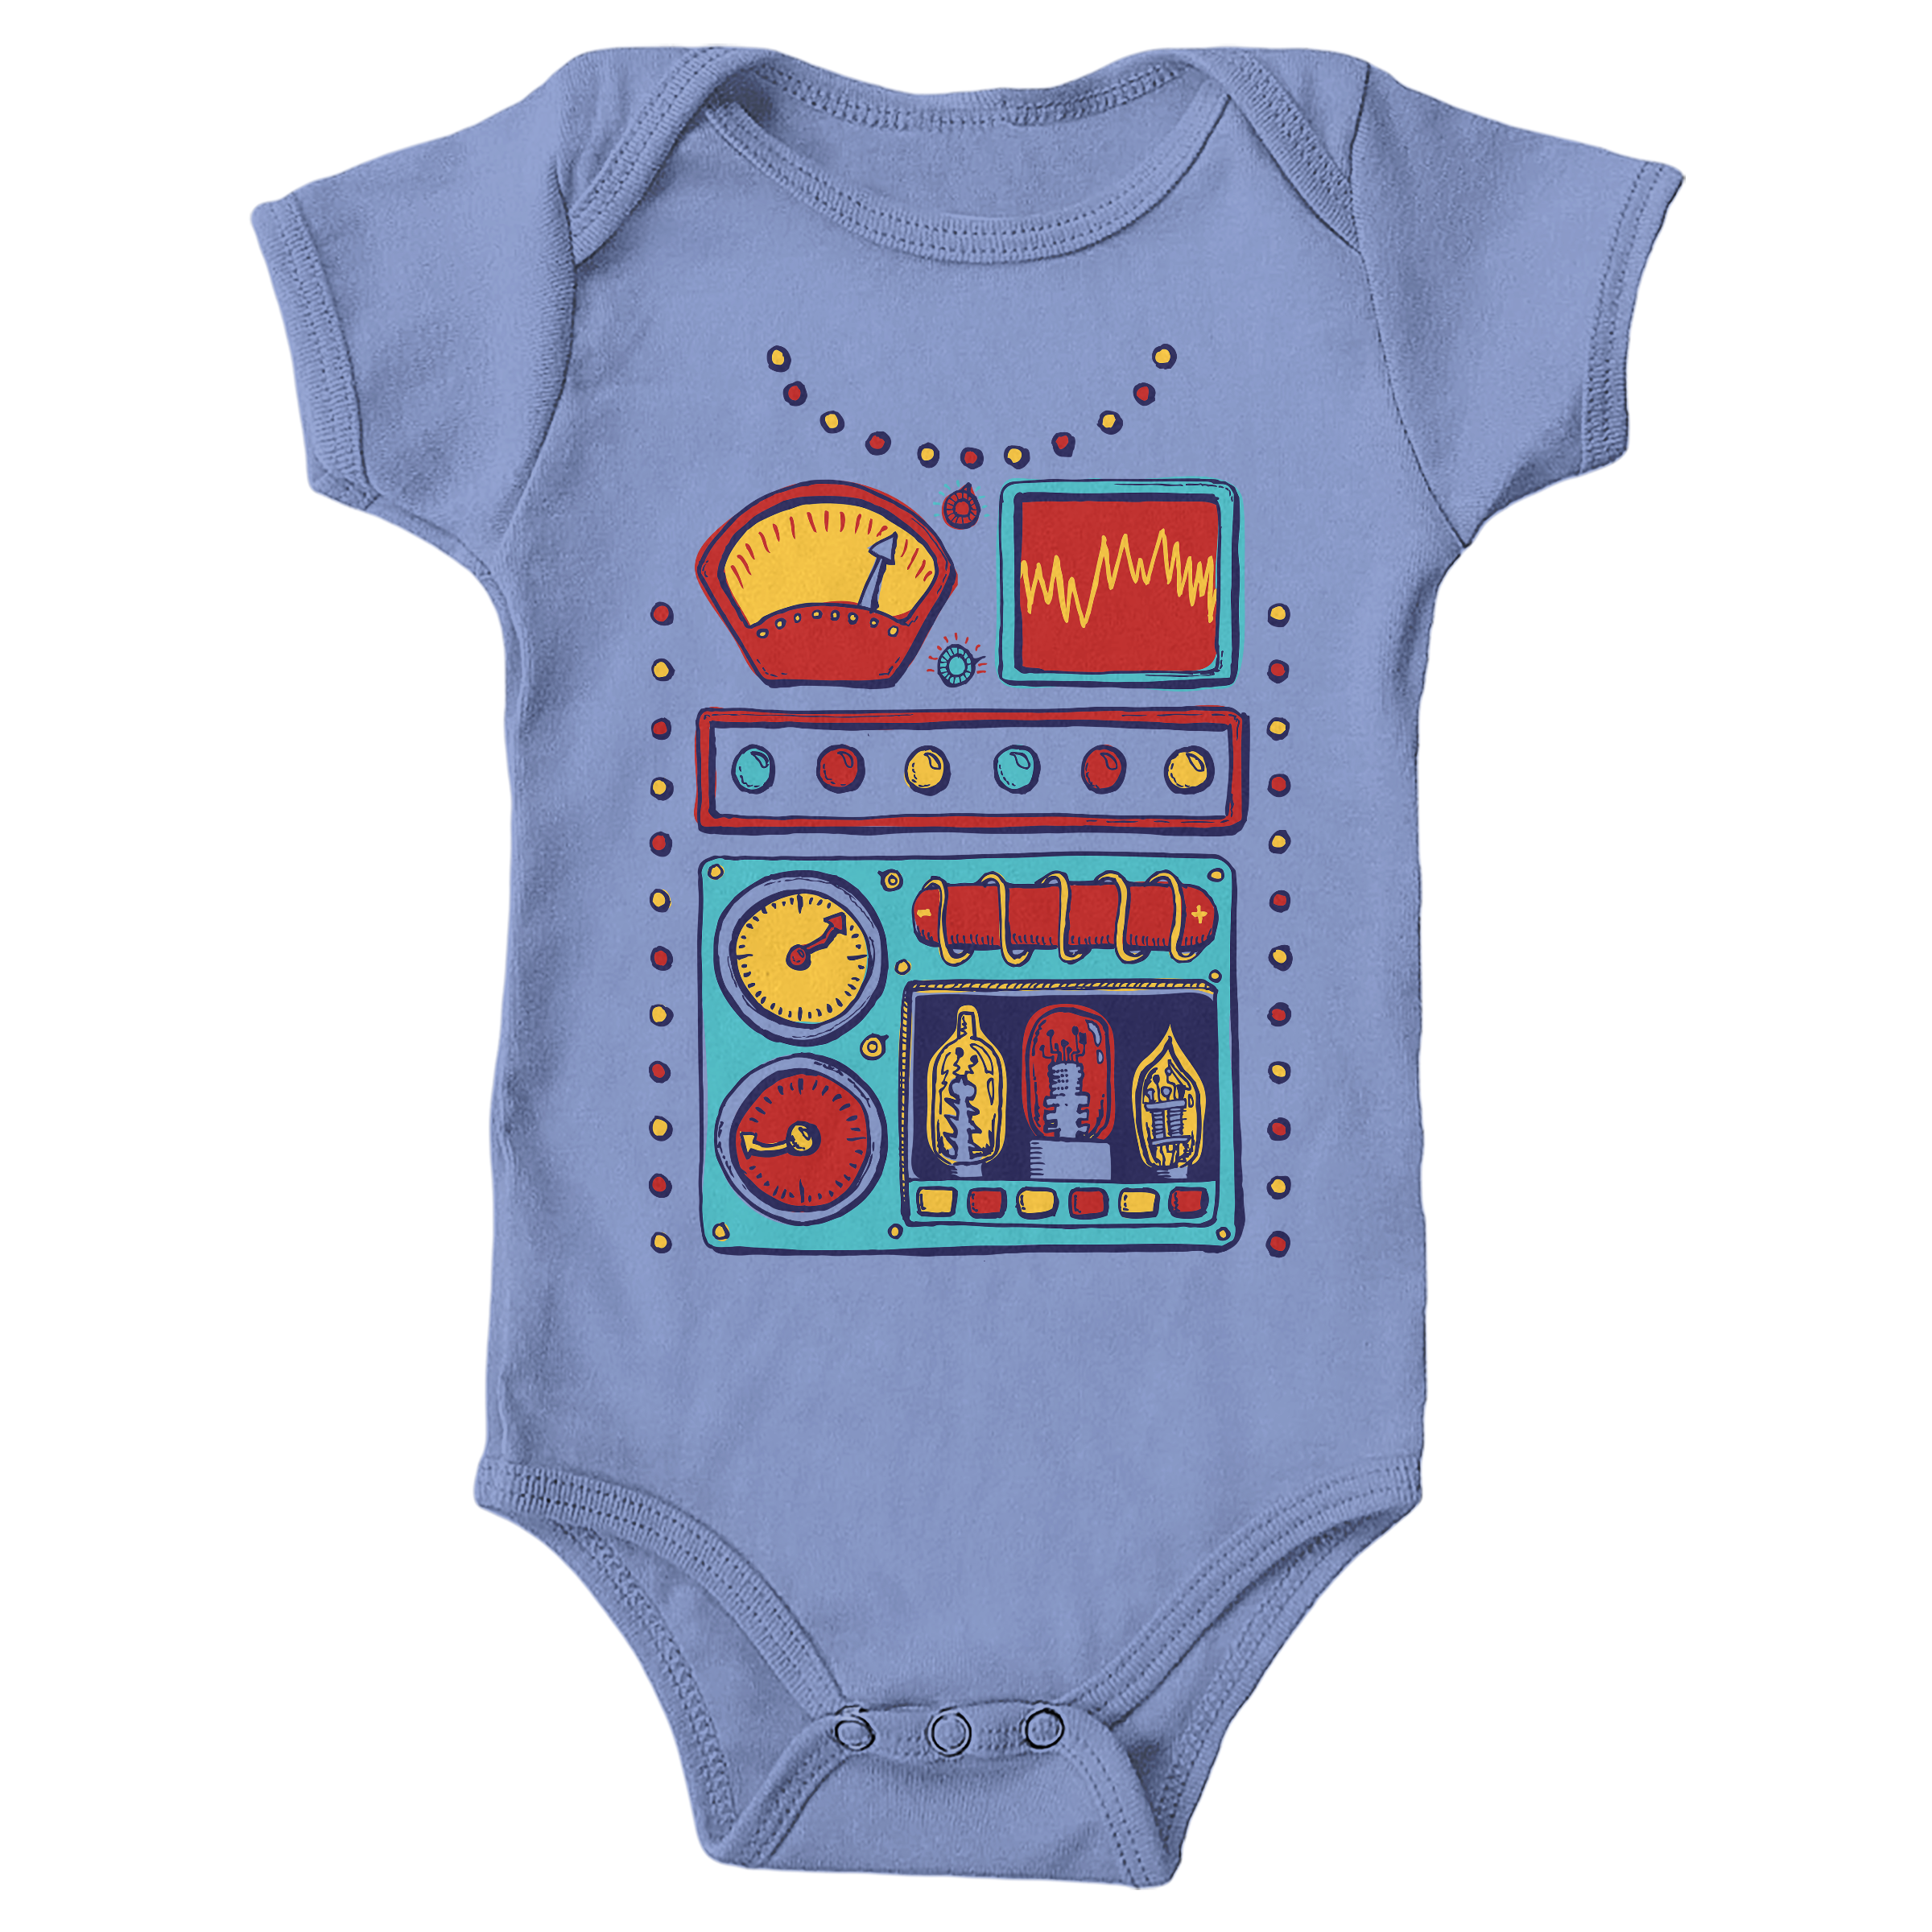 Retrobot 2000 Carolina Blue (Onesie)